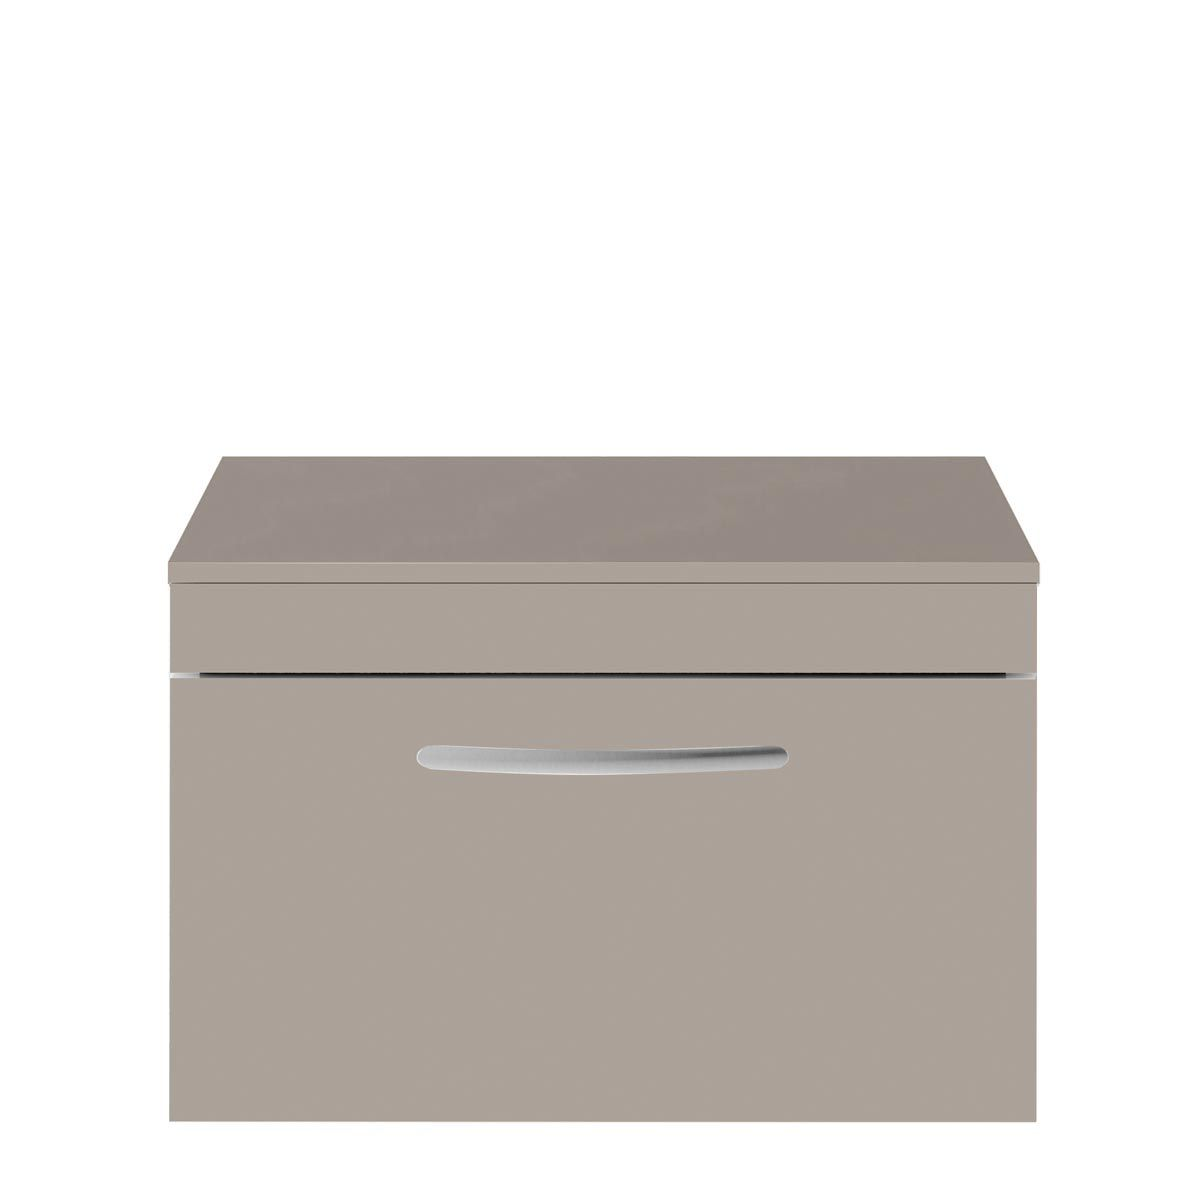 Nuie Athena Stone Grey 1 Drawer Wall Hung Vanity Unit with 18mm Worktop 500mm